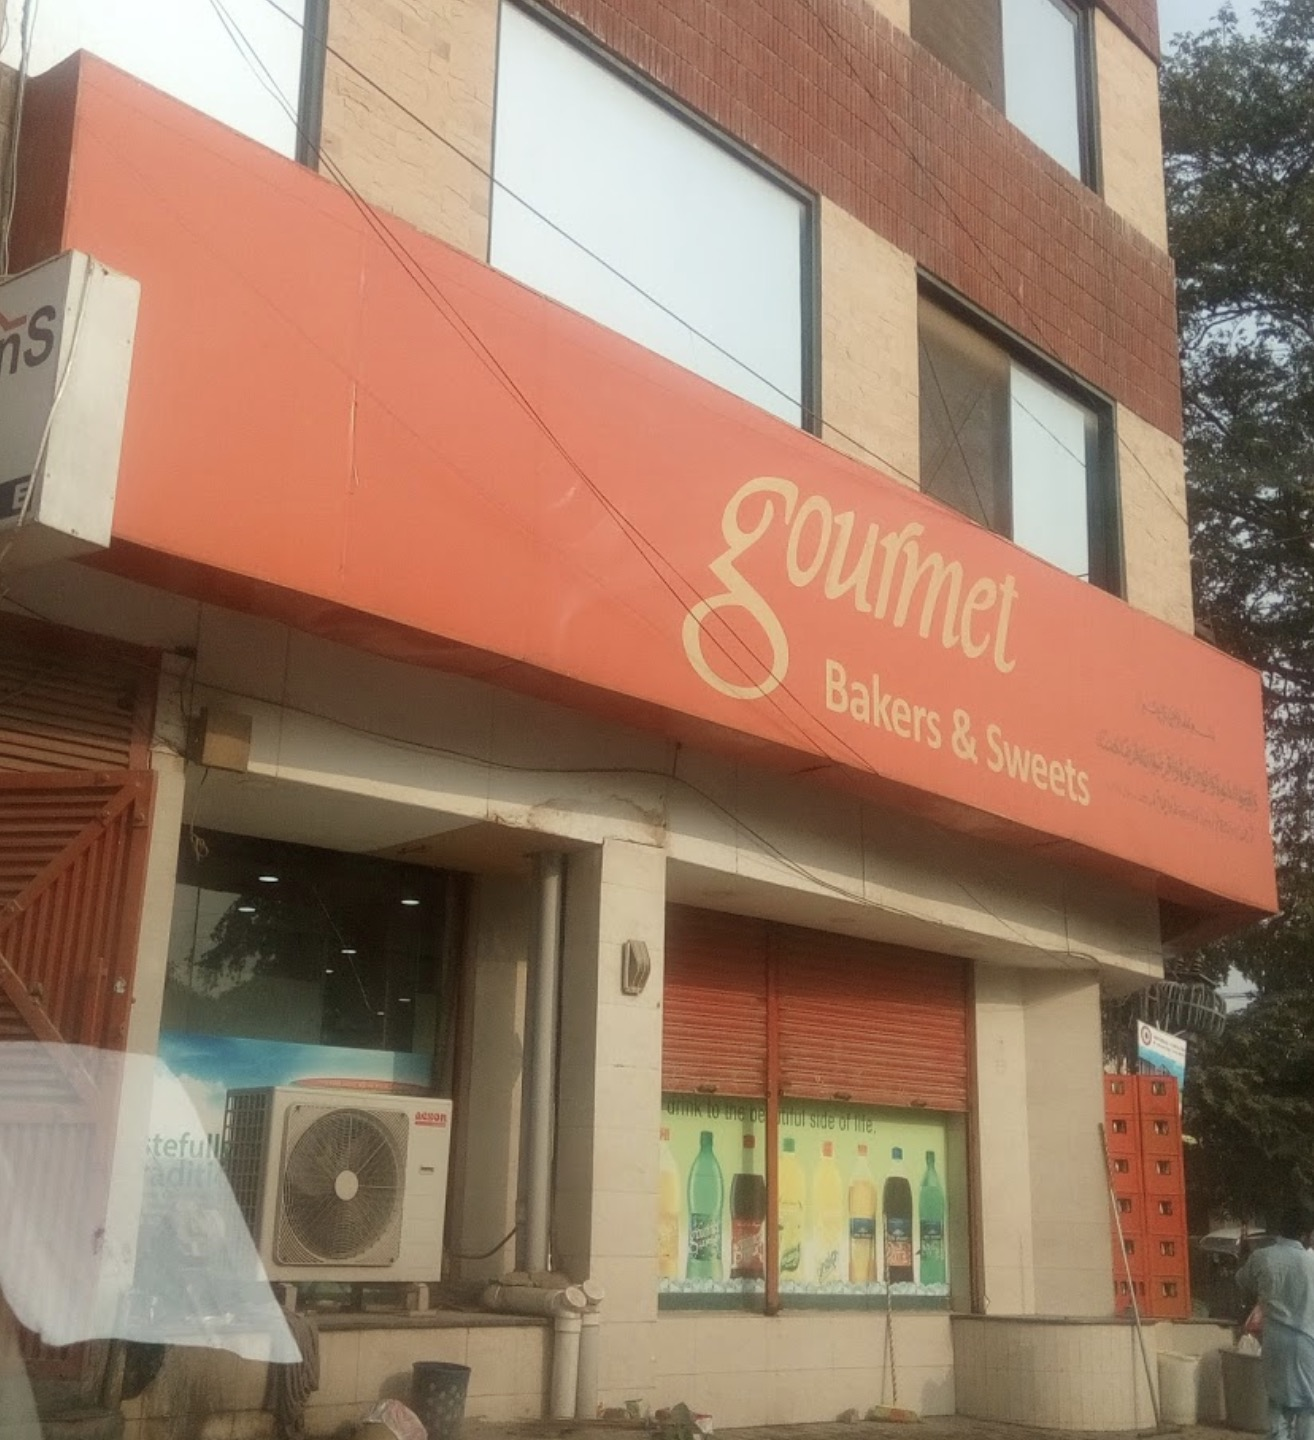 Gourmet Bakers & Sweets (Samanabad Town)